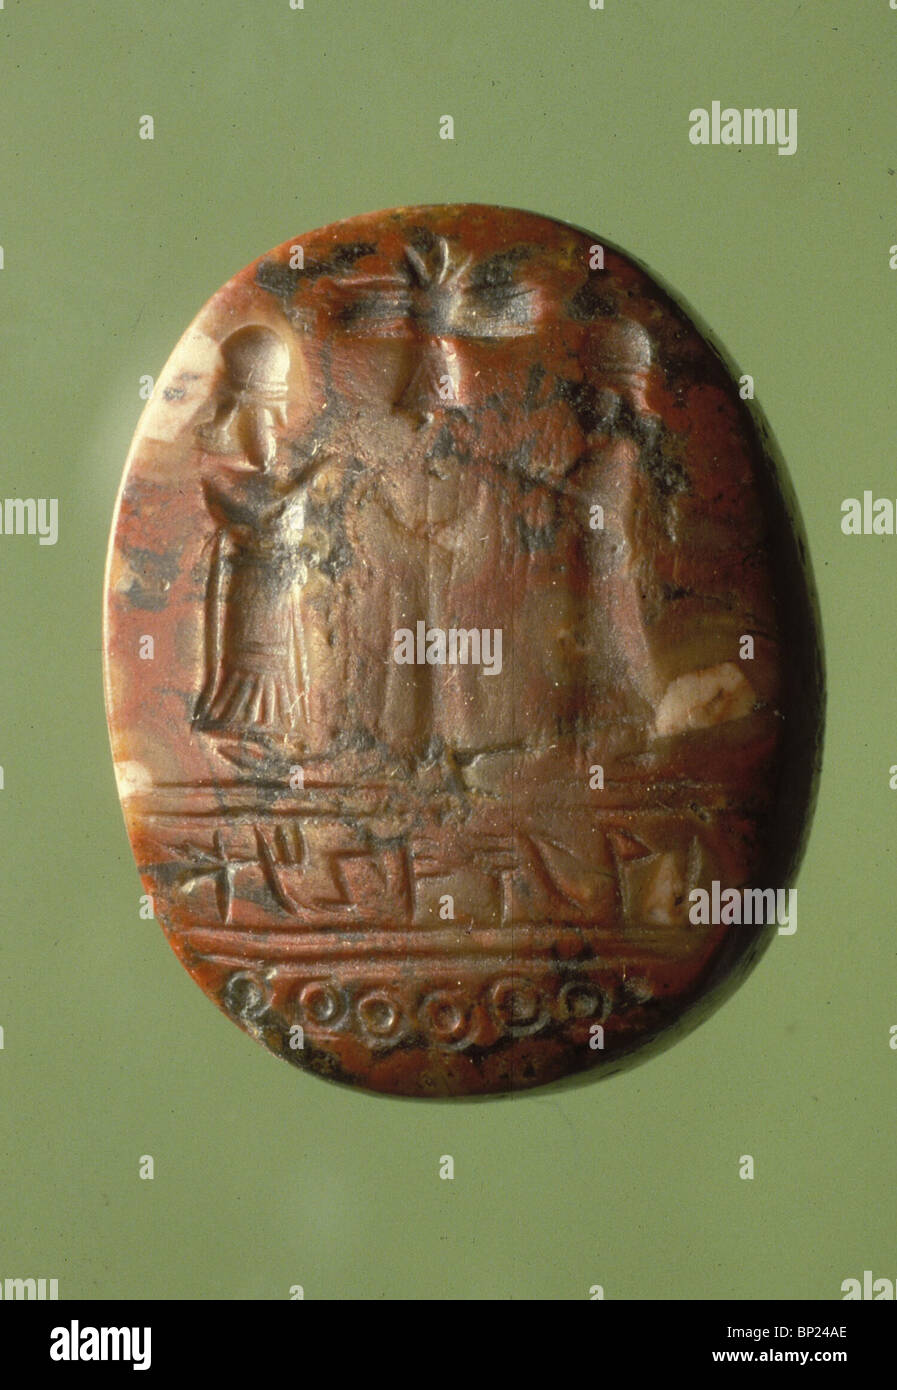 "460. JASPER SEAL BEARING THE INSCRIPTION ""AMOS THE SCRIBE"" DATING FROM 8-7TH. C. BC. "" Stock Photo"